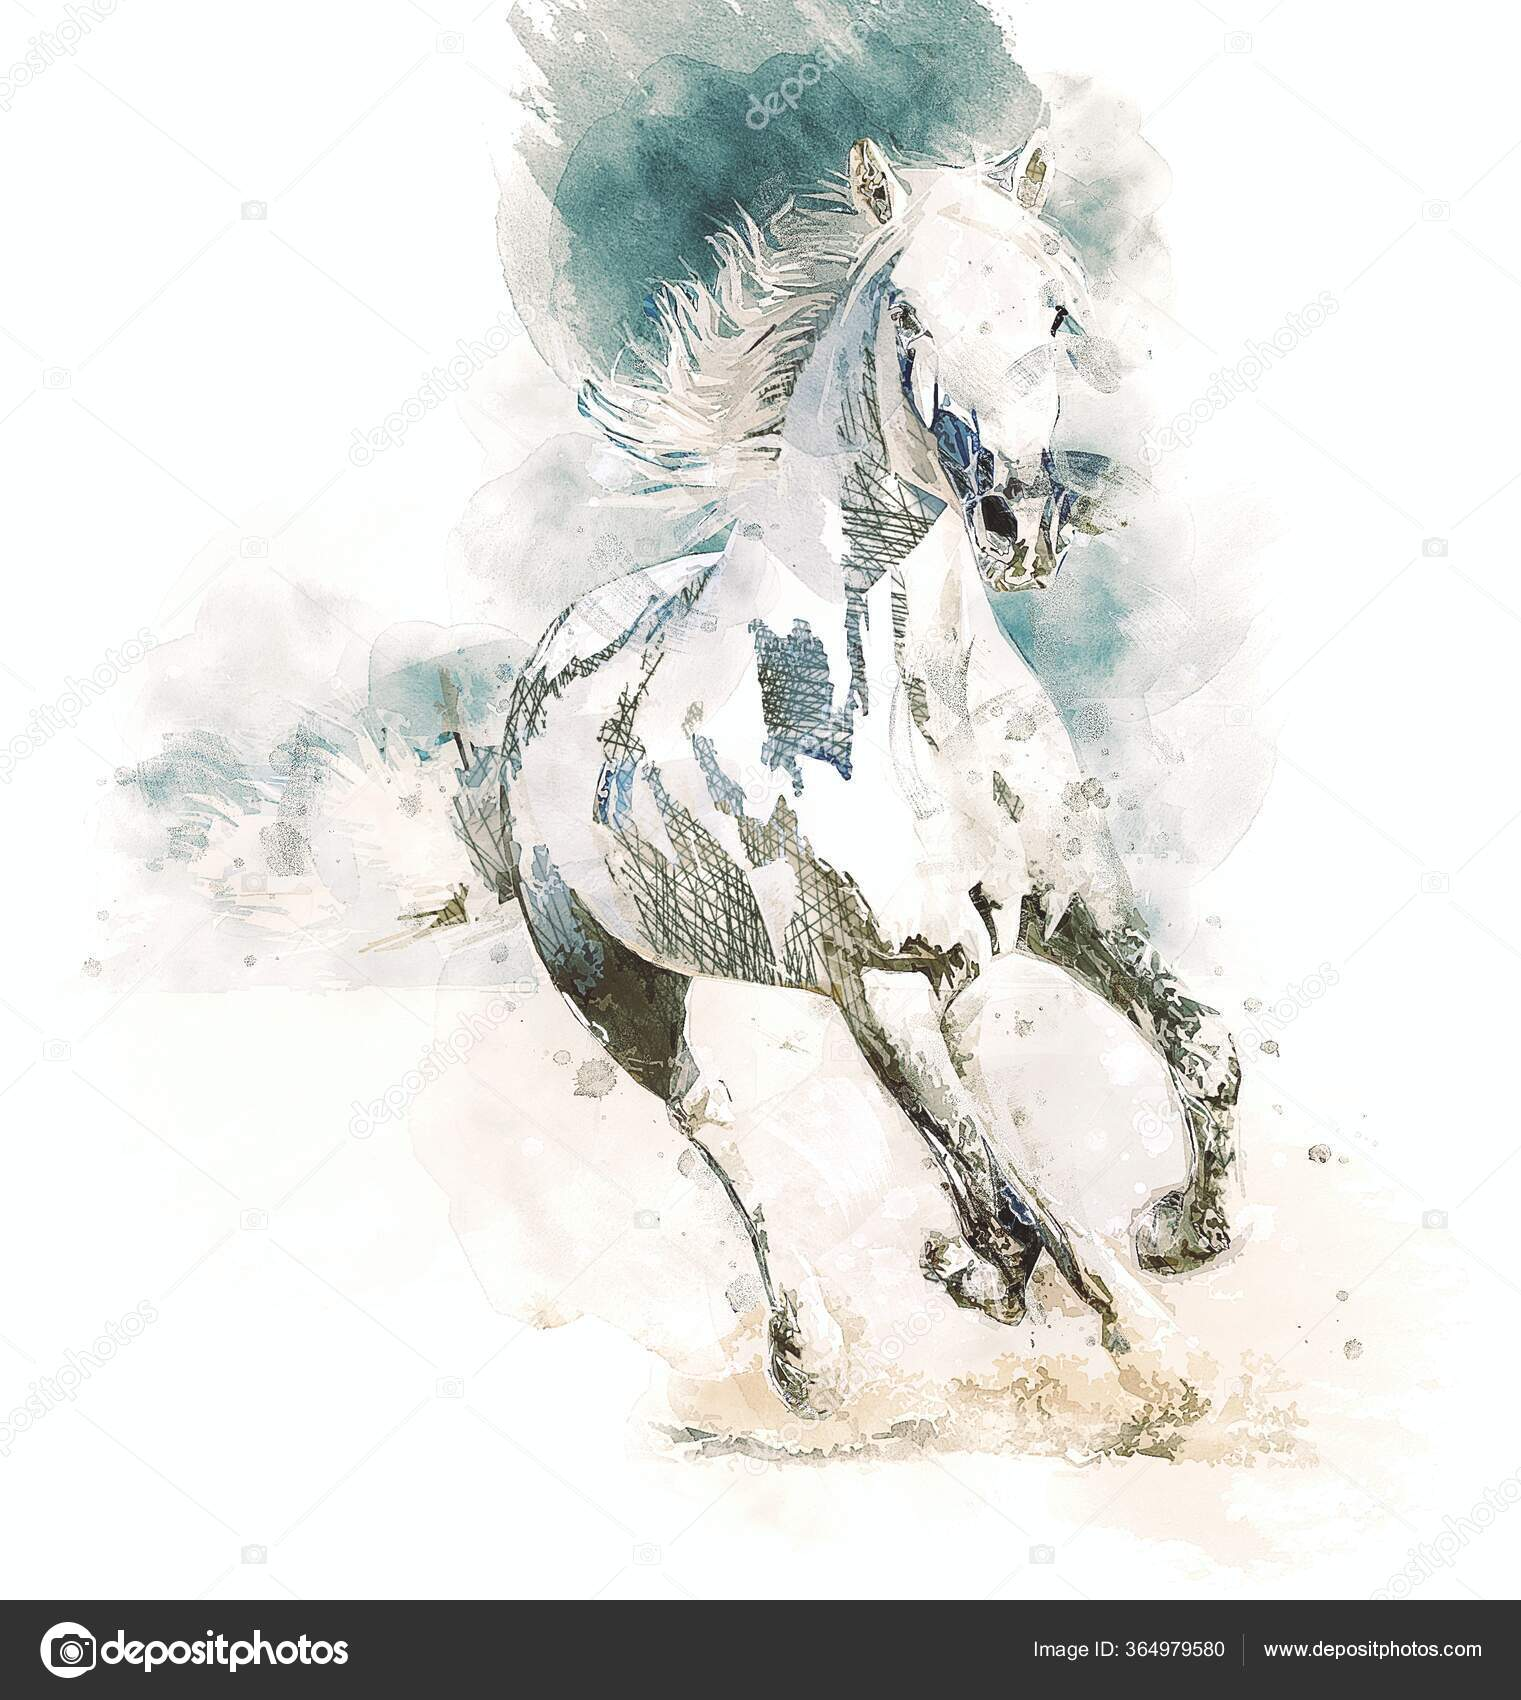 Colorful Horse Art Illustration Grunge Painting Stock Photo C Maxtor7777 364979580